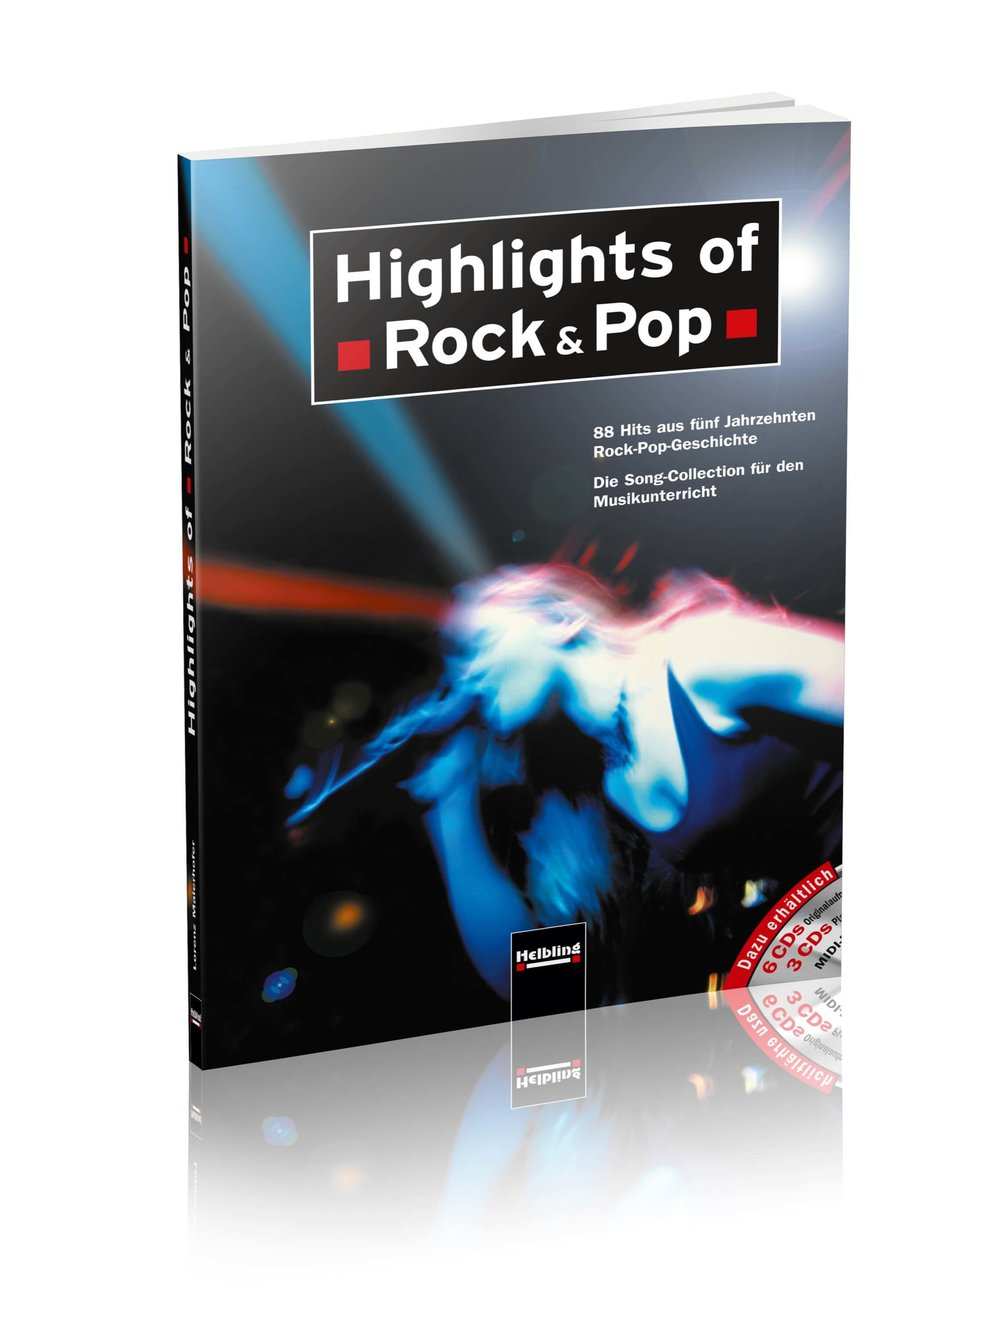 Highlights_rock_pop.jpg